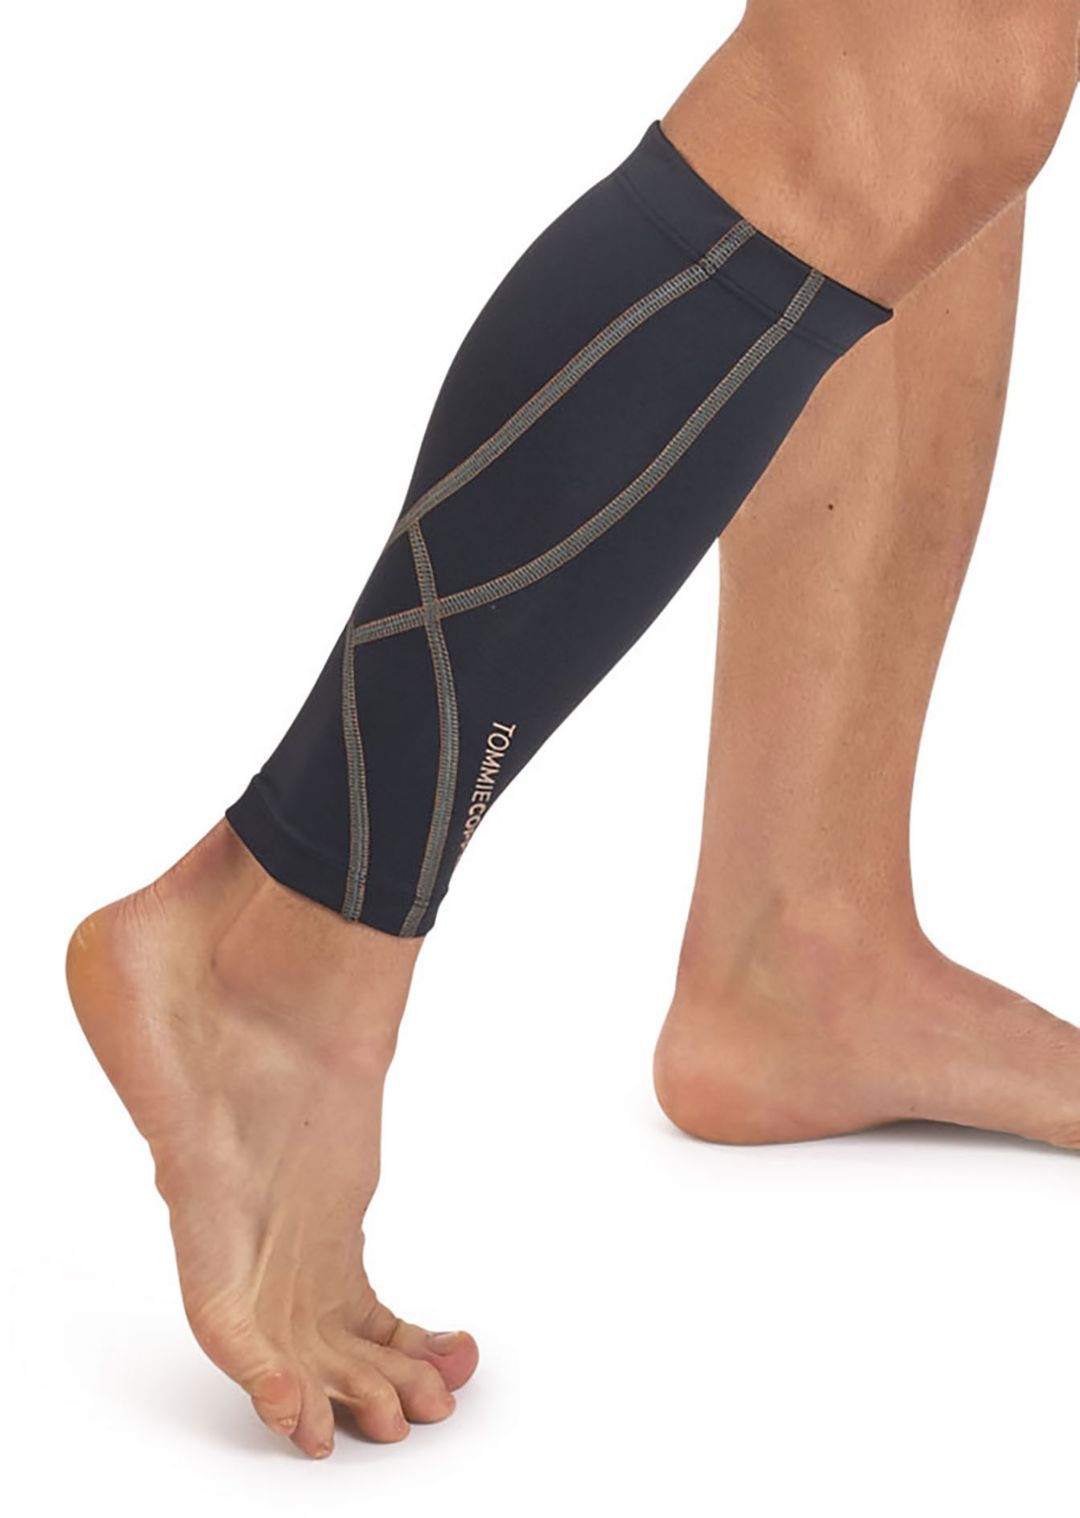 f9bd2d1a17 Tommie Copper Men's Performance Compression Calf Sleeve | DICK'S ...